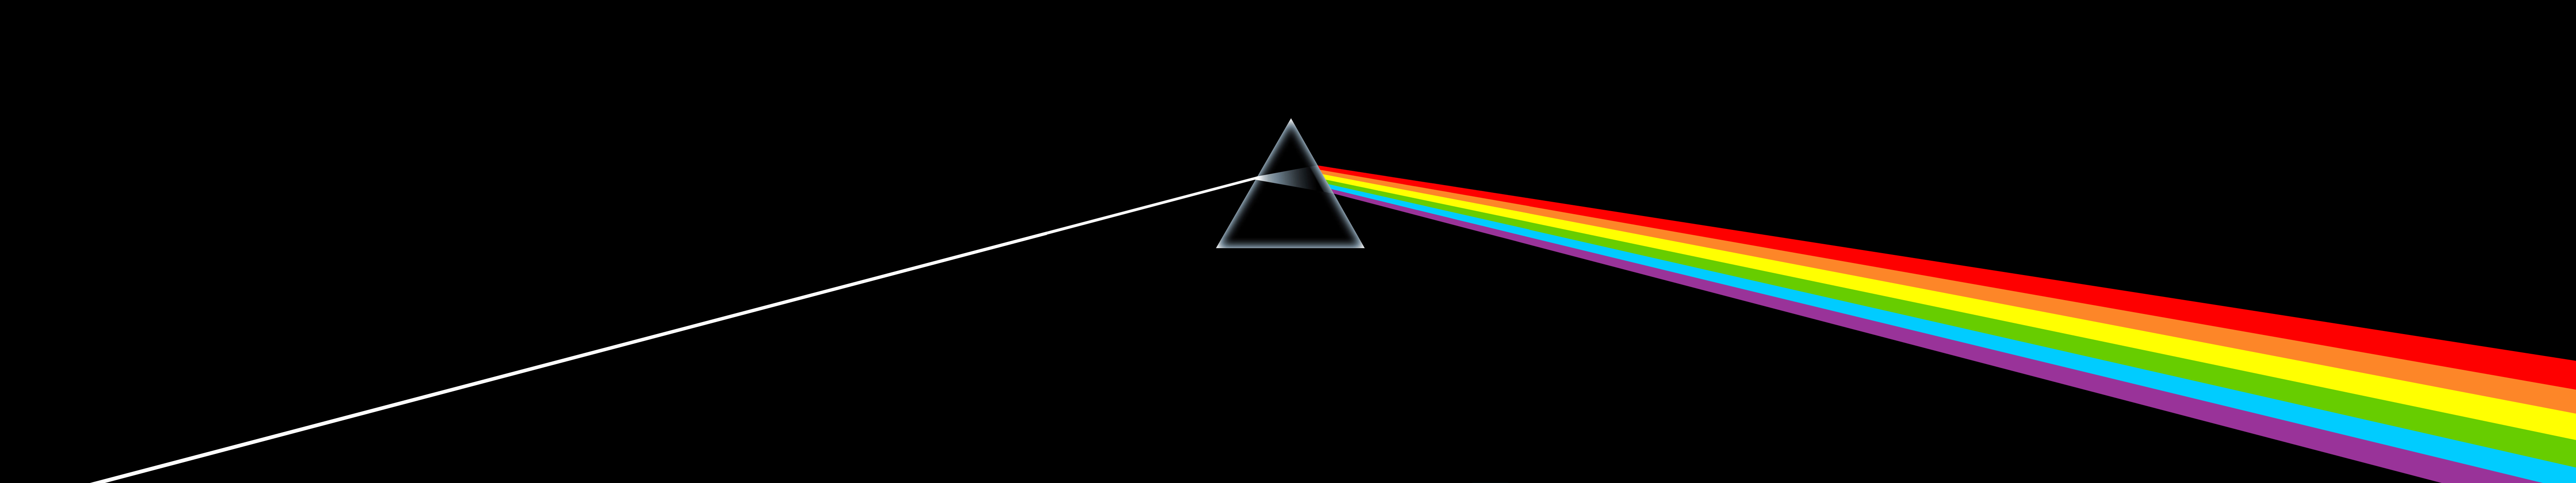 download pink floyd dark side of the moon wallpaper hd gallery